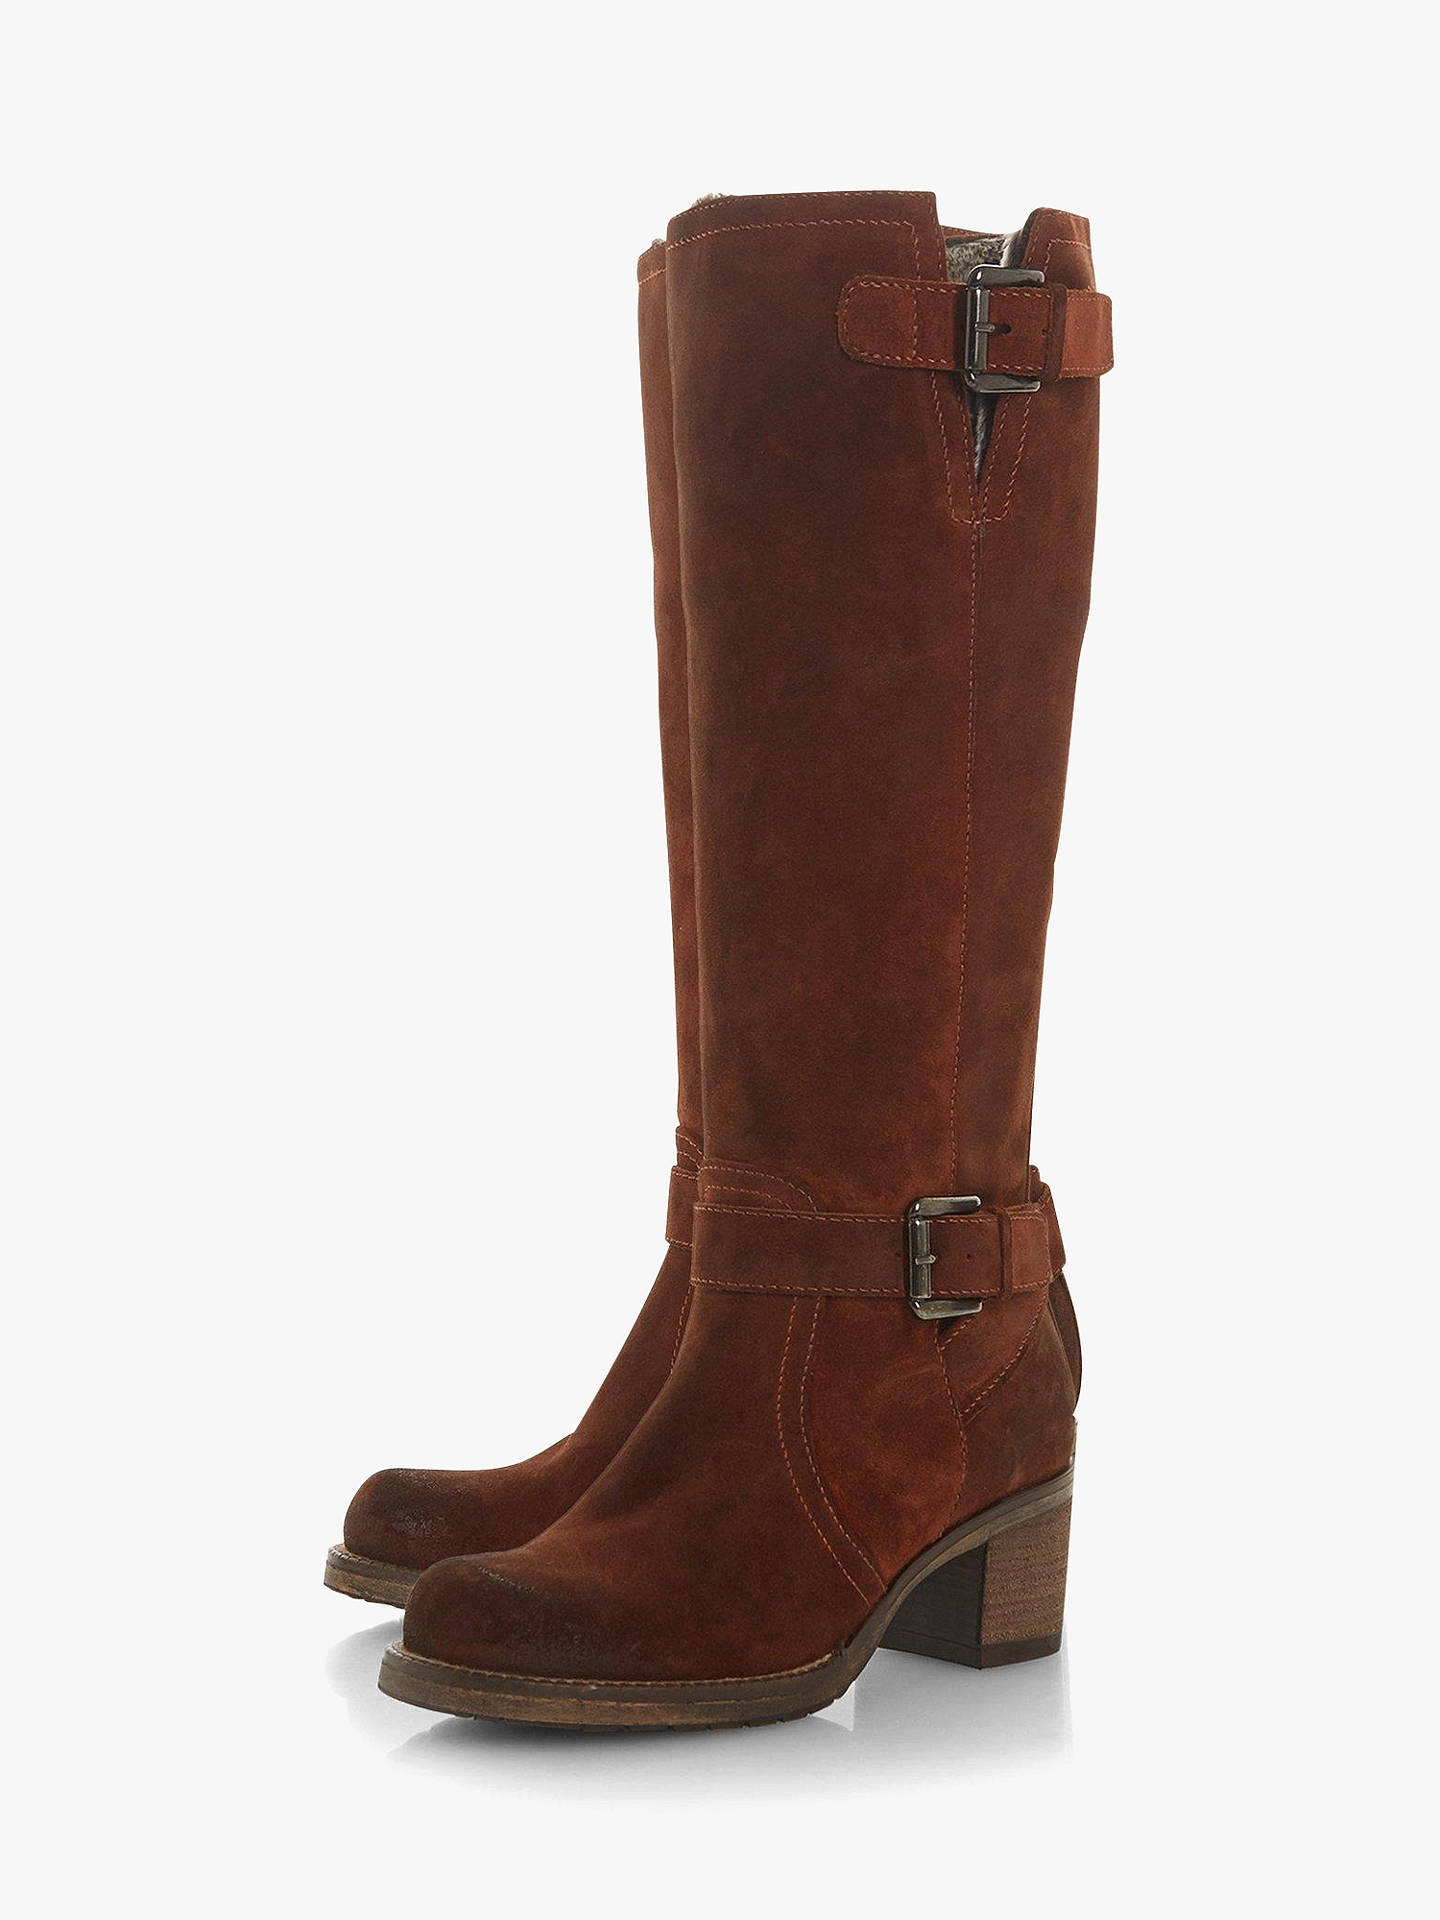 Buy Dune Tansey Knee High Boots, Chestnut Suede, 3 Online at johnlewis.com